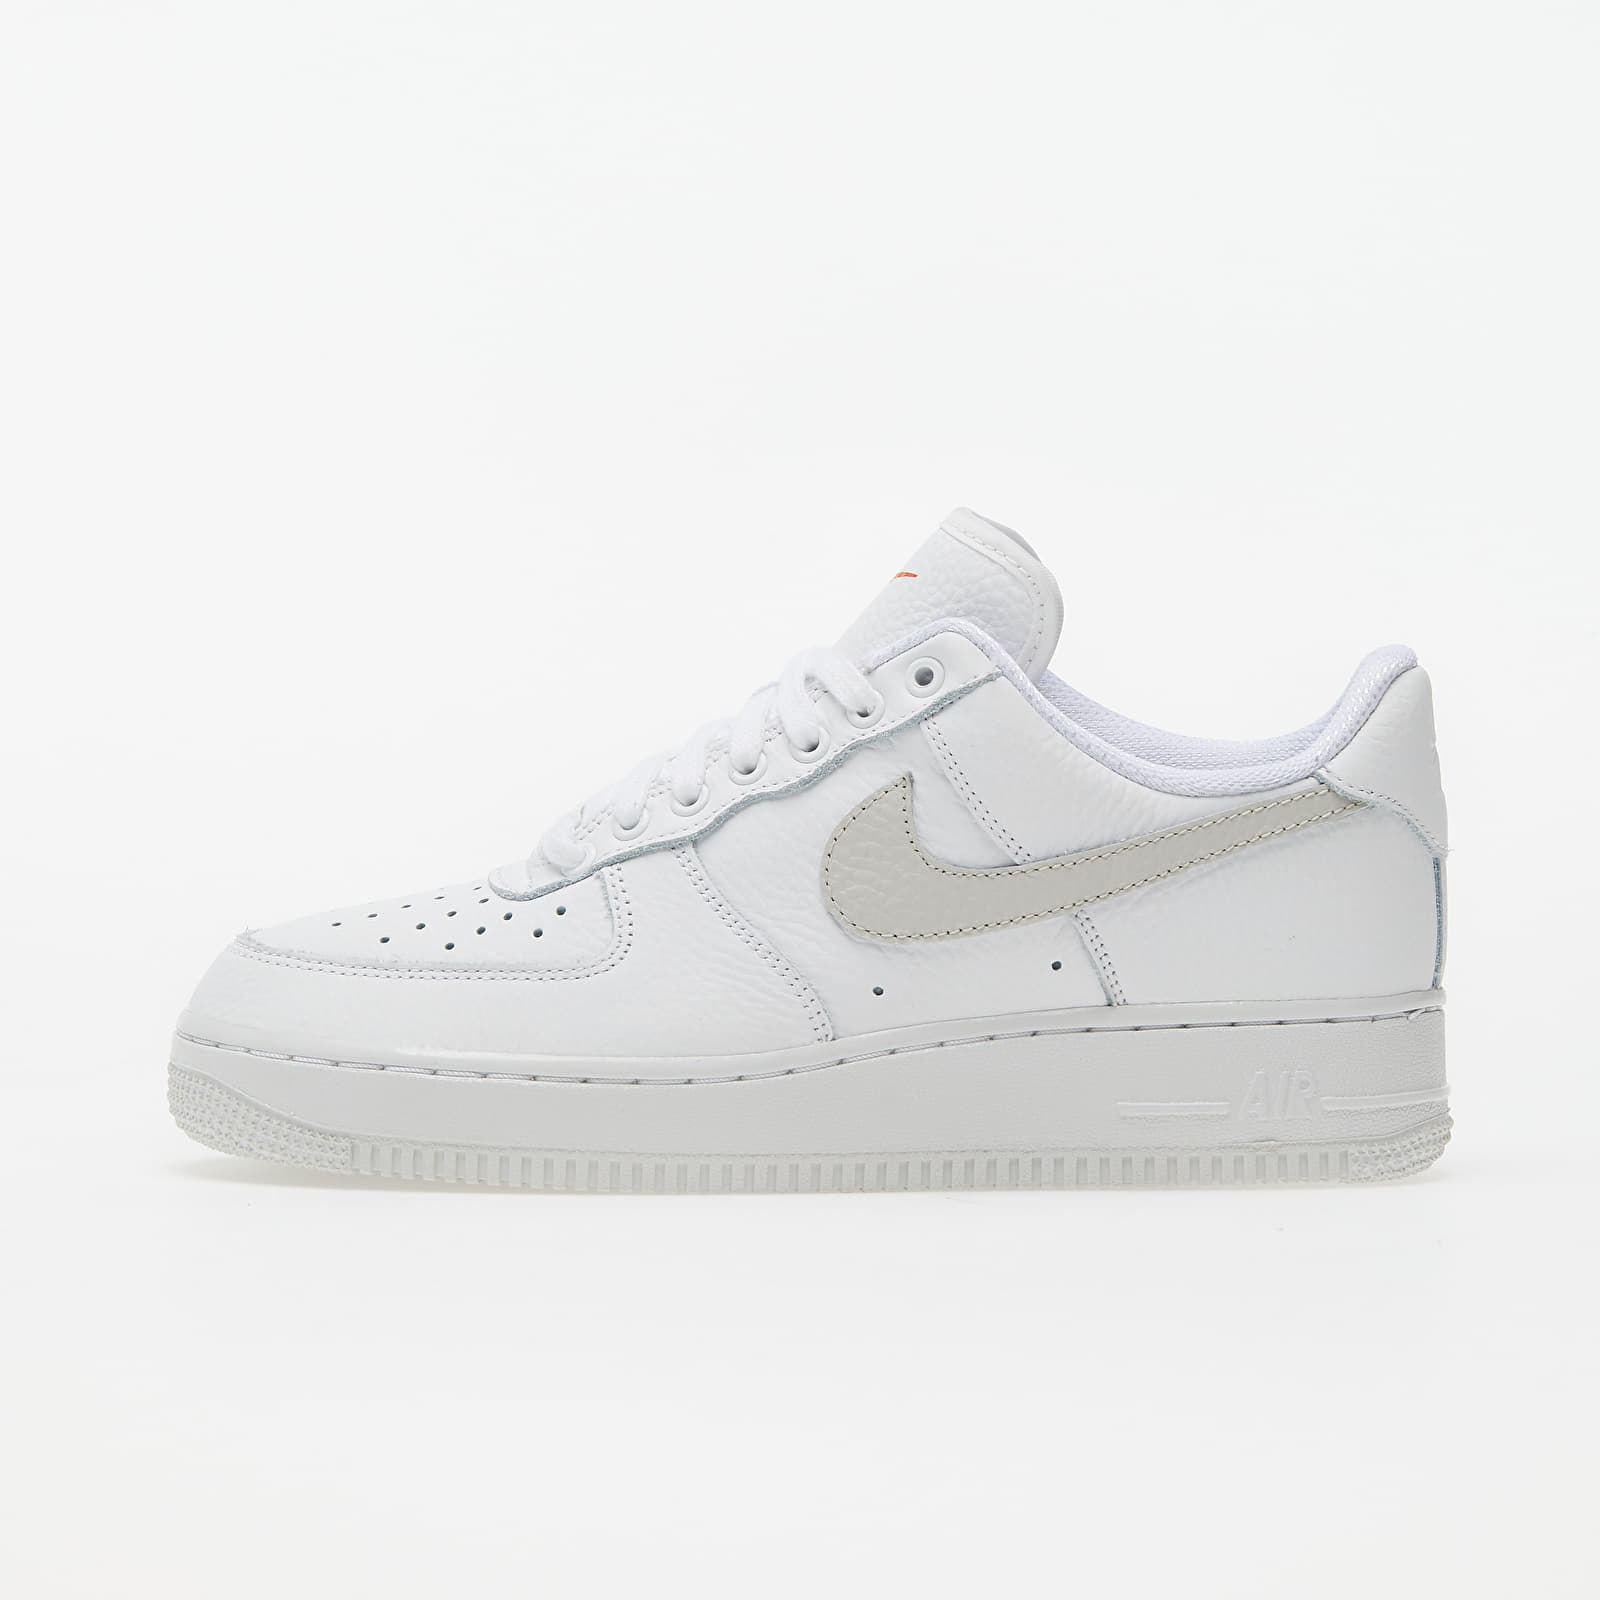 Women's shoes Nike Wmns Air Force 1 '07 Summit White/ White-Solar Flare-Starfish